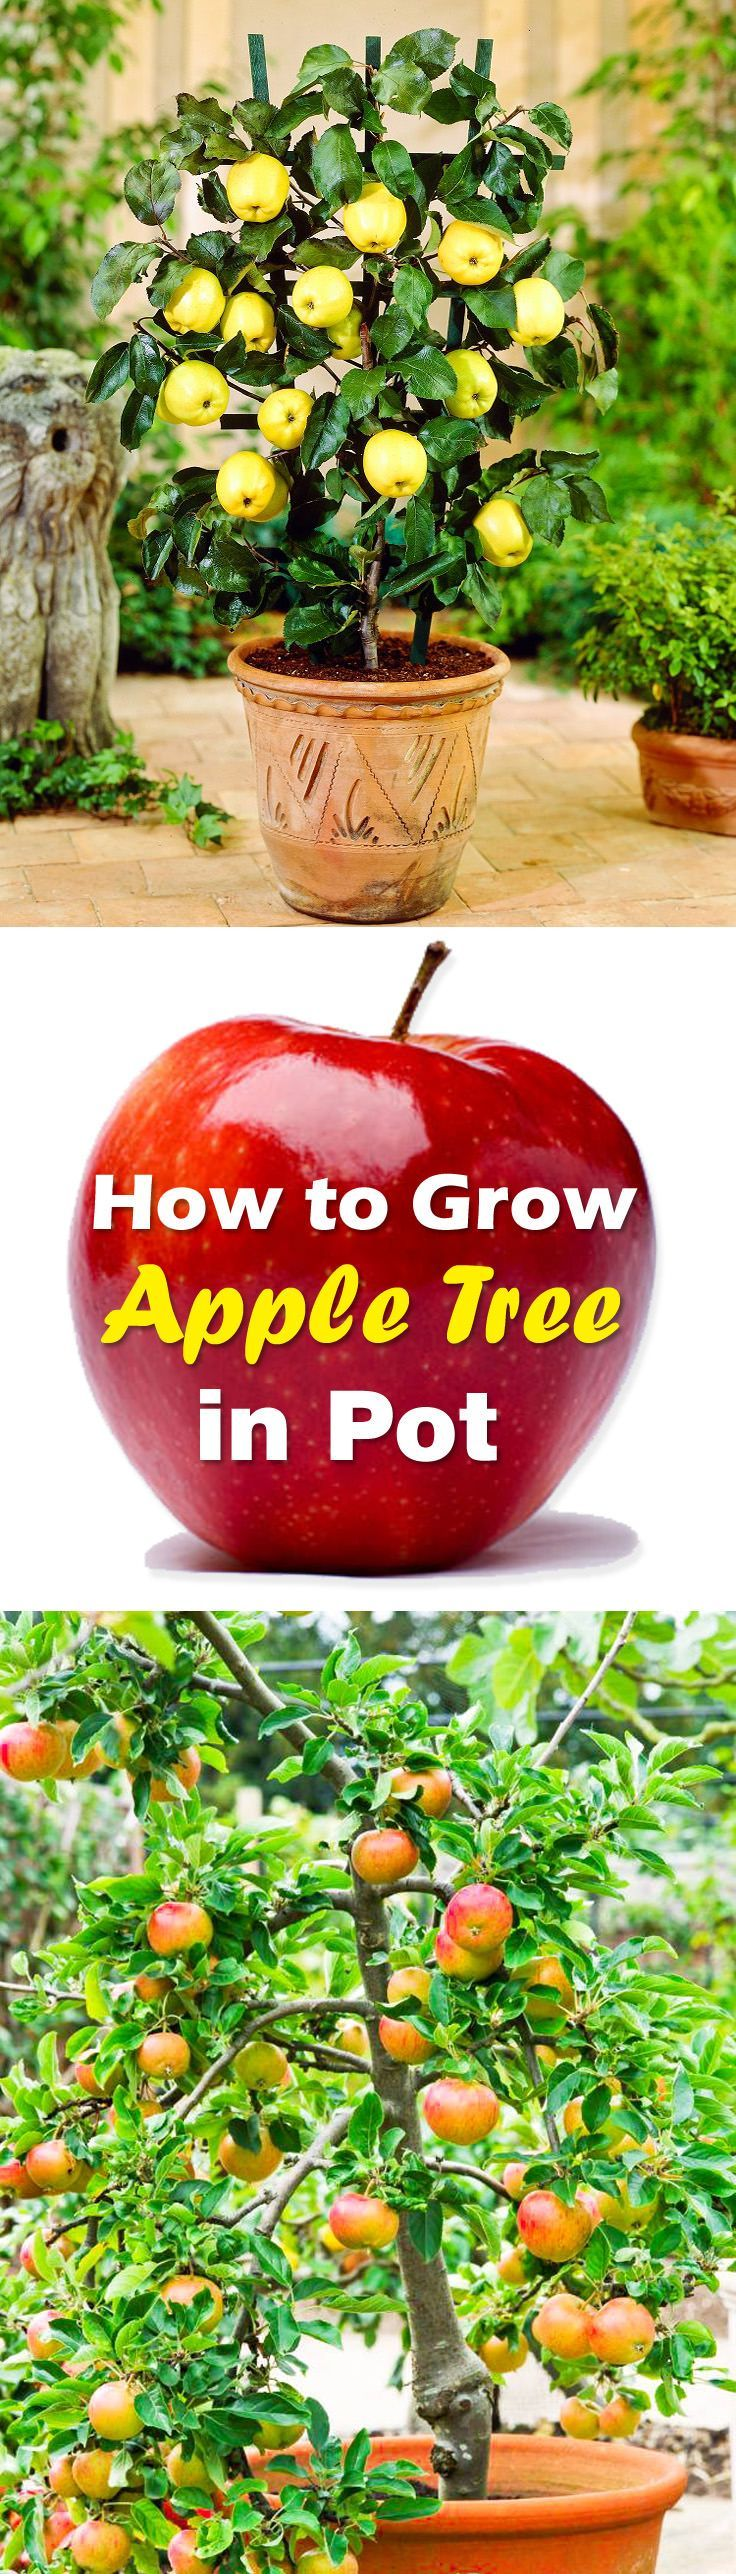 Learn how to grow an apple tree in container in this article.